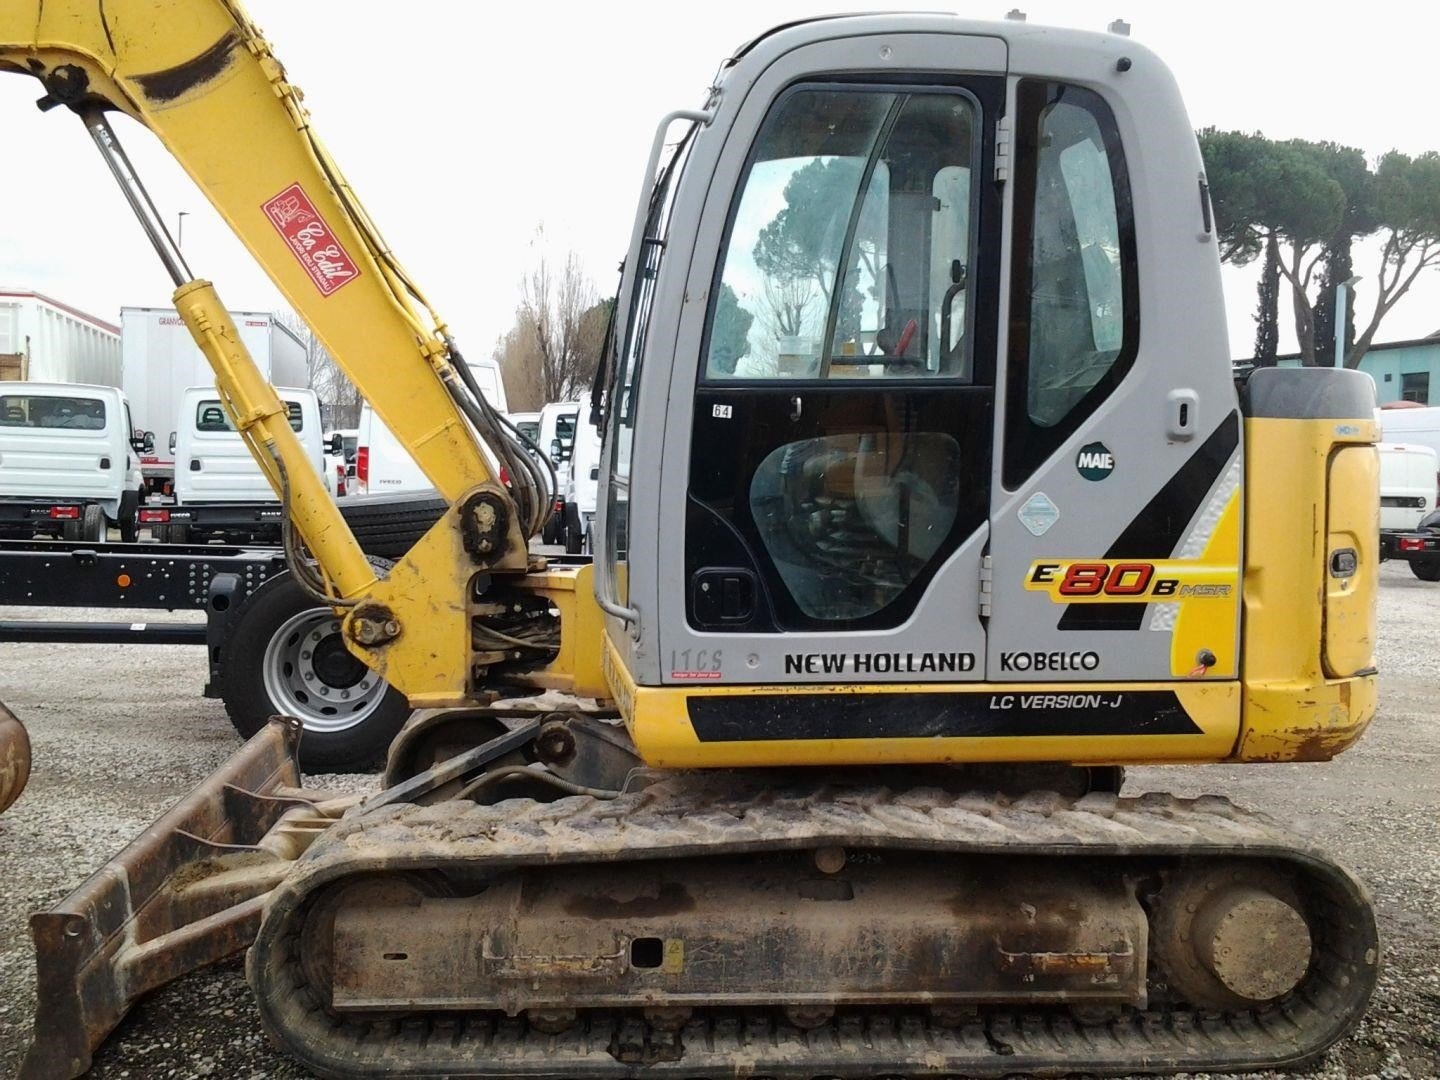 NEW|HOLLAND|KOBELCO E80BMSR-2